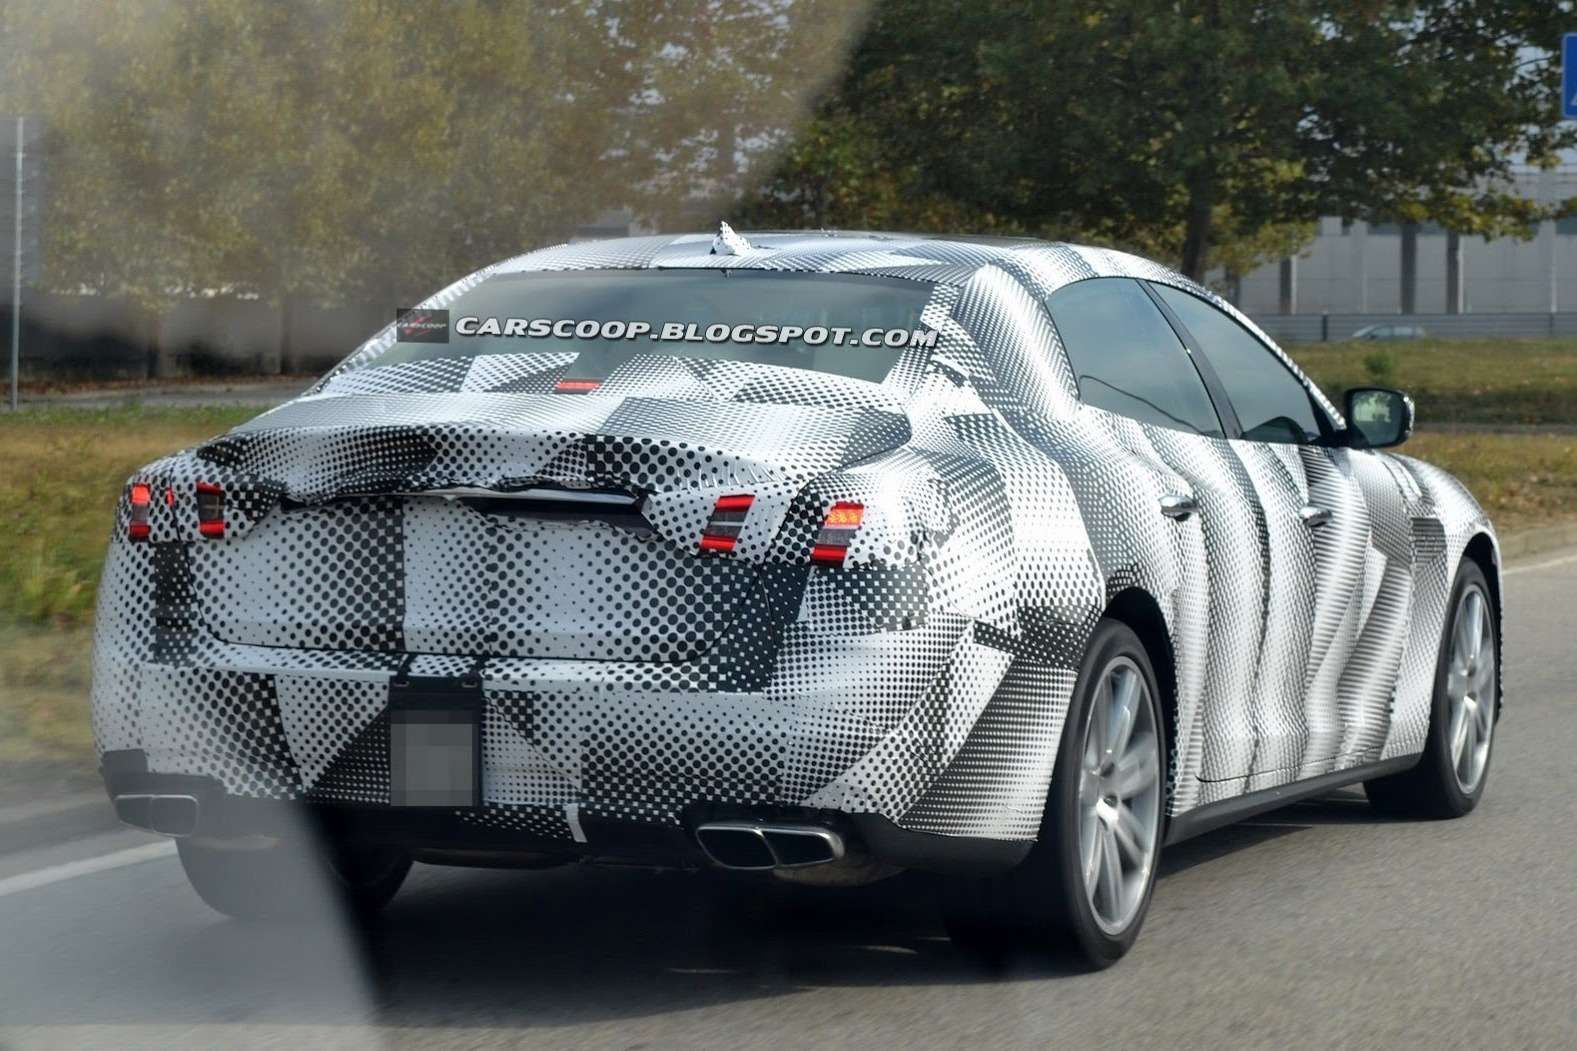 New Maserati Quattroporte test prototype side-rear view 1_no_copyright